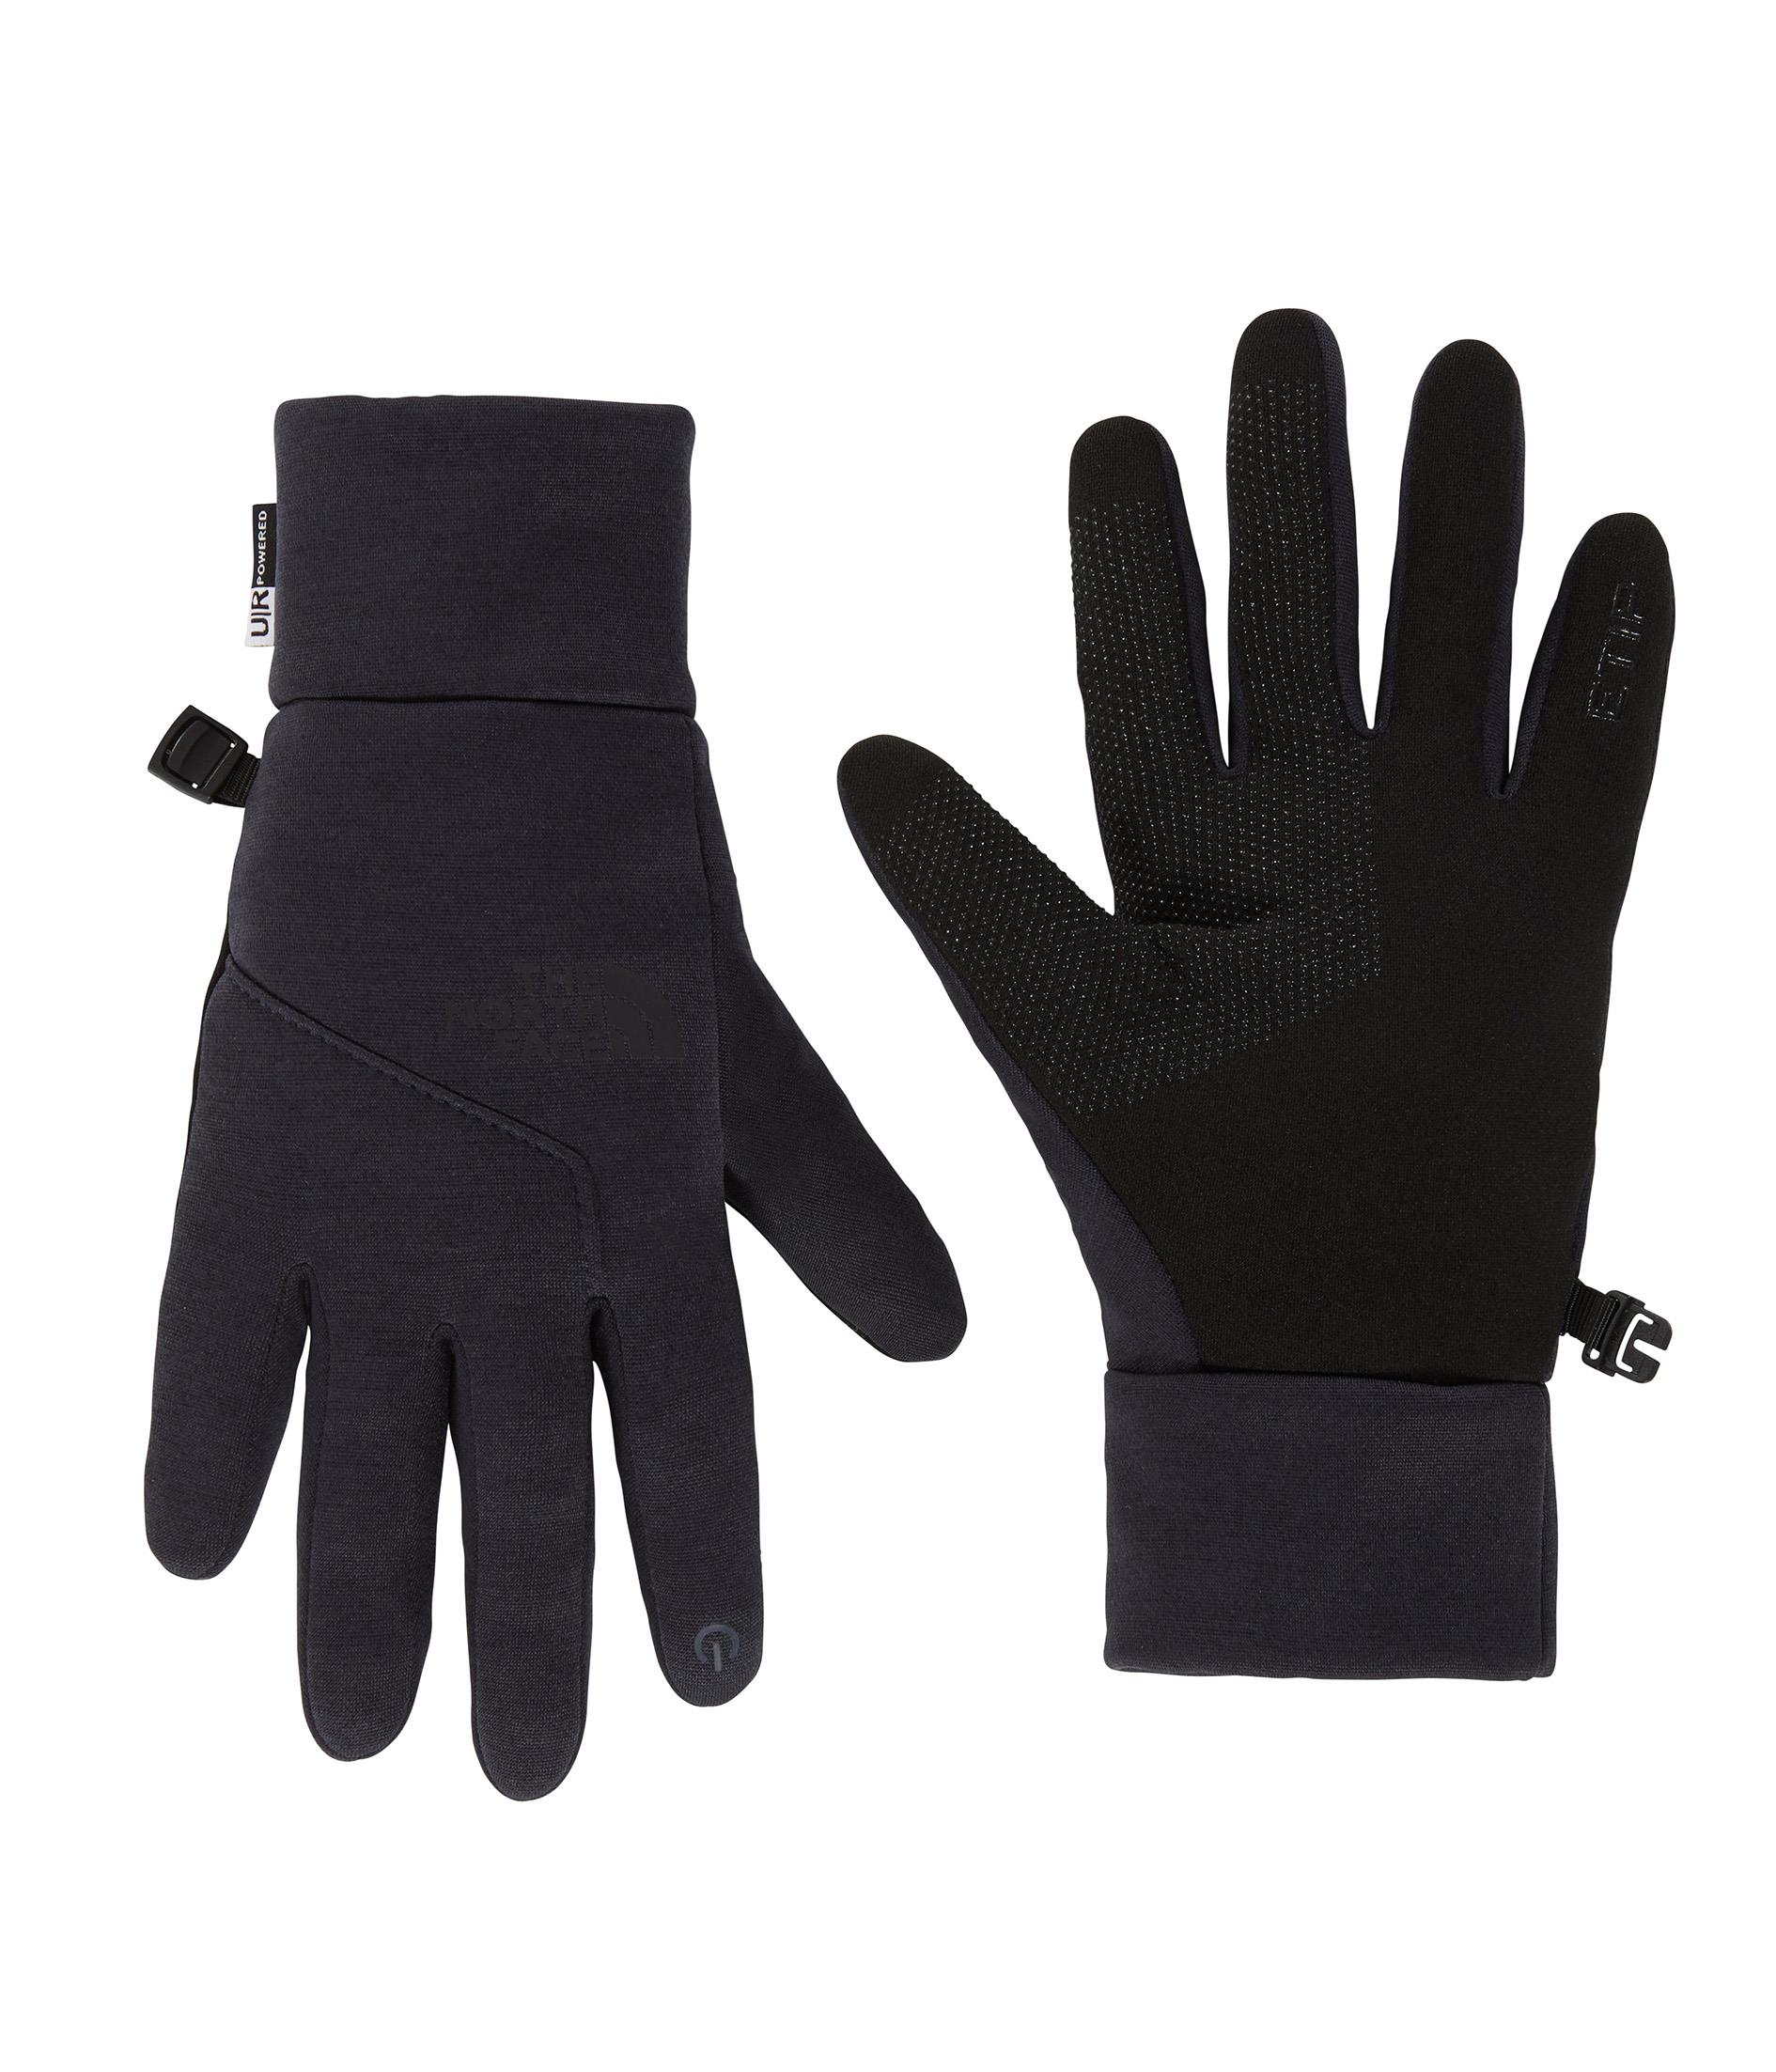 The North Face Kadın Etıp Glove Eldiven